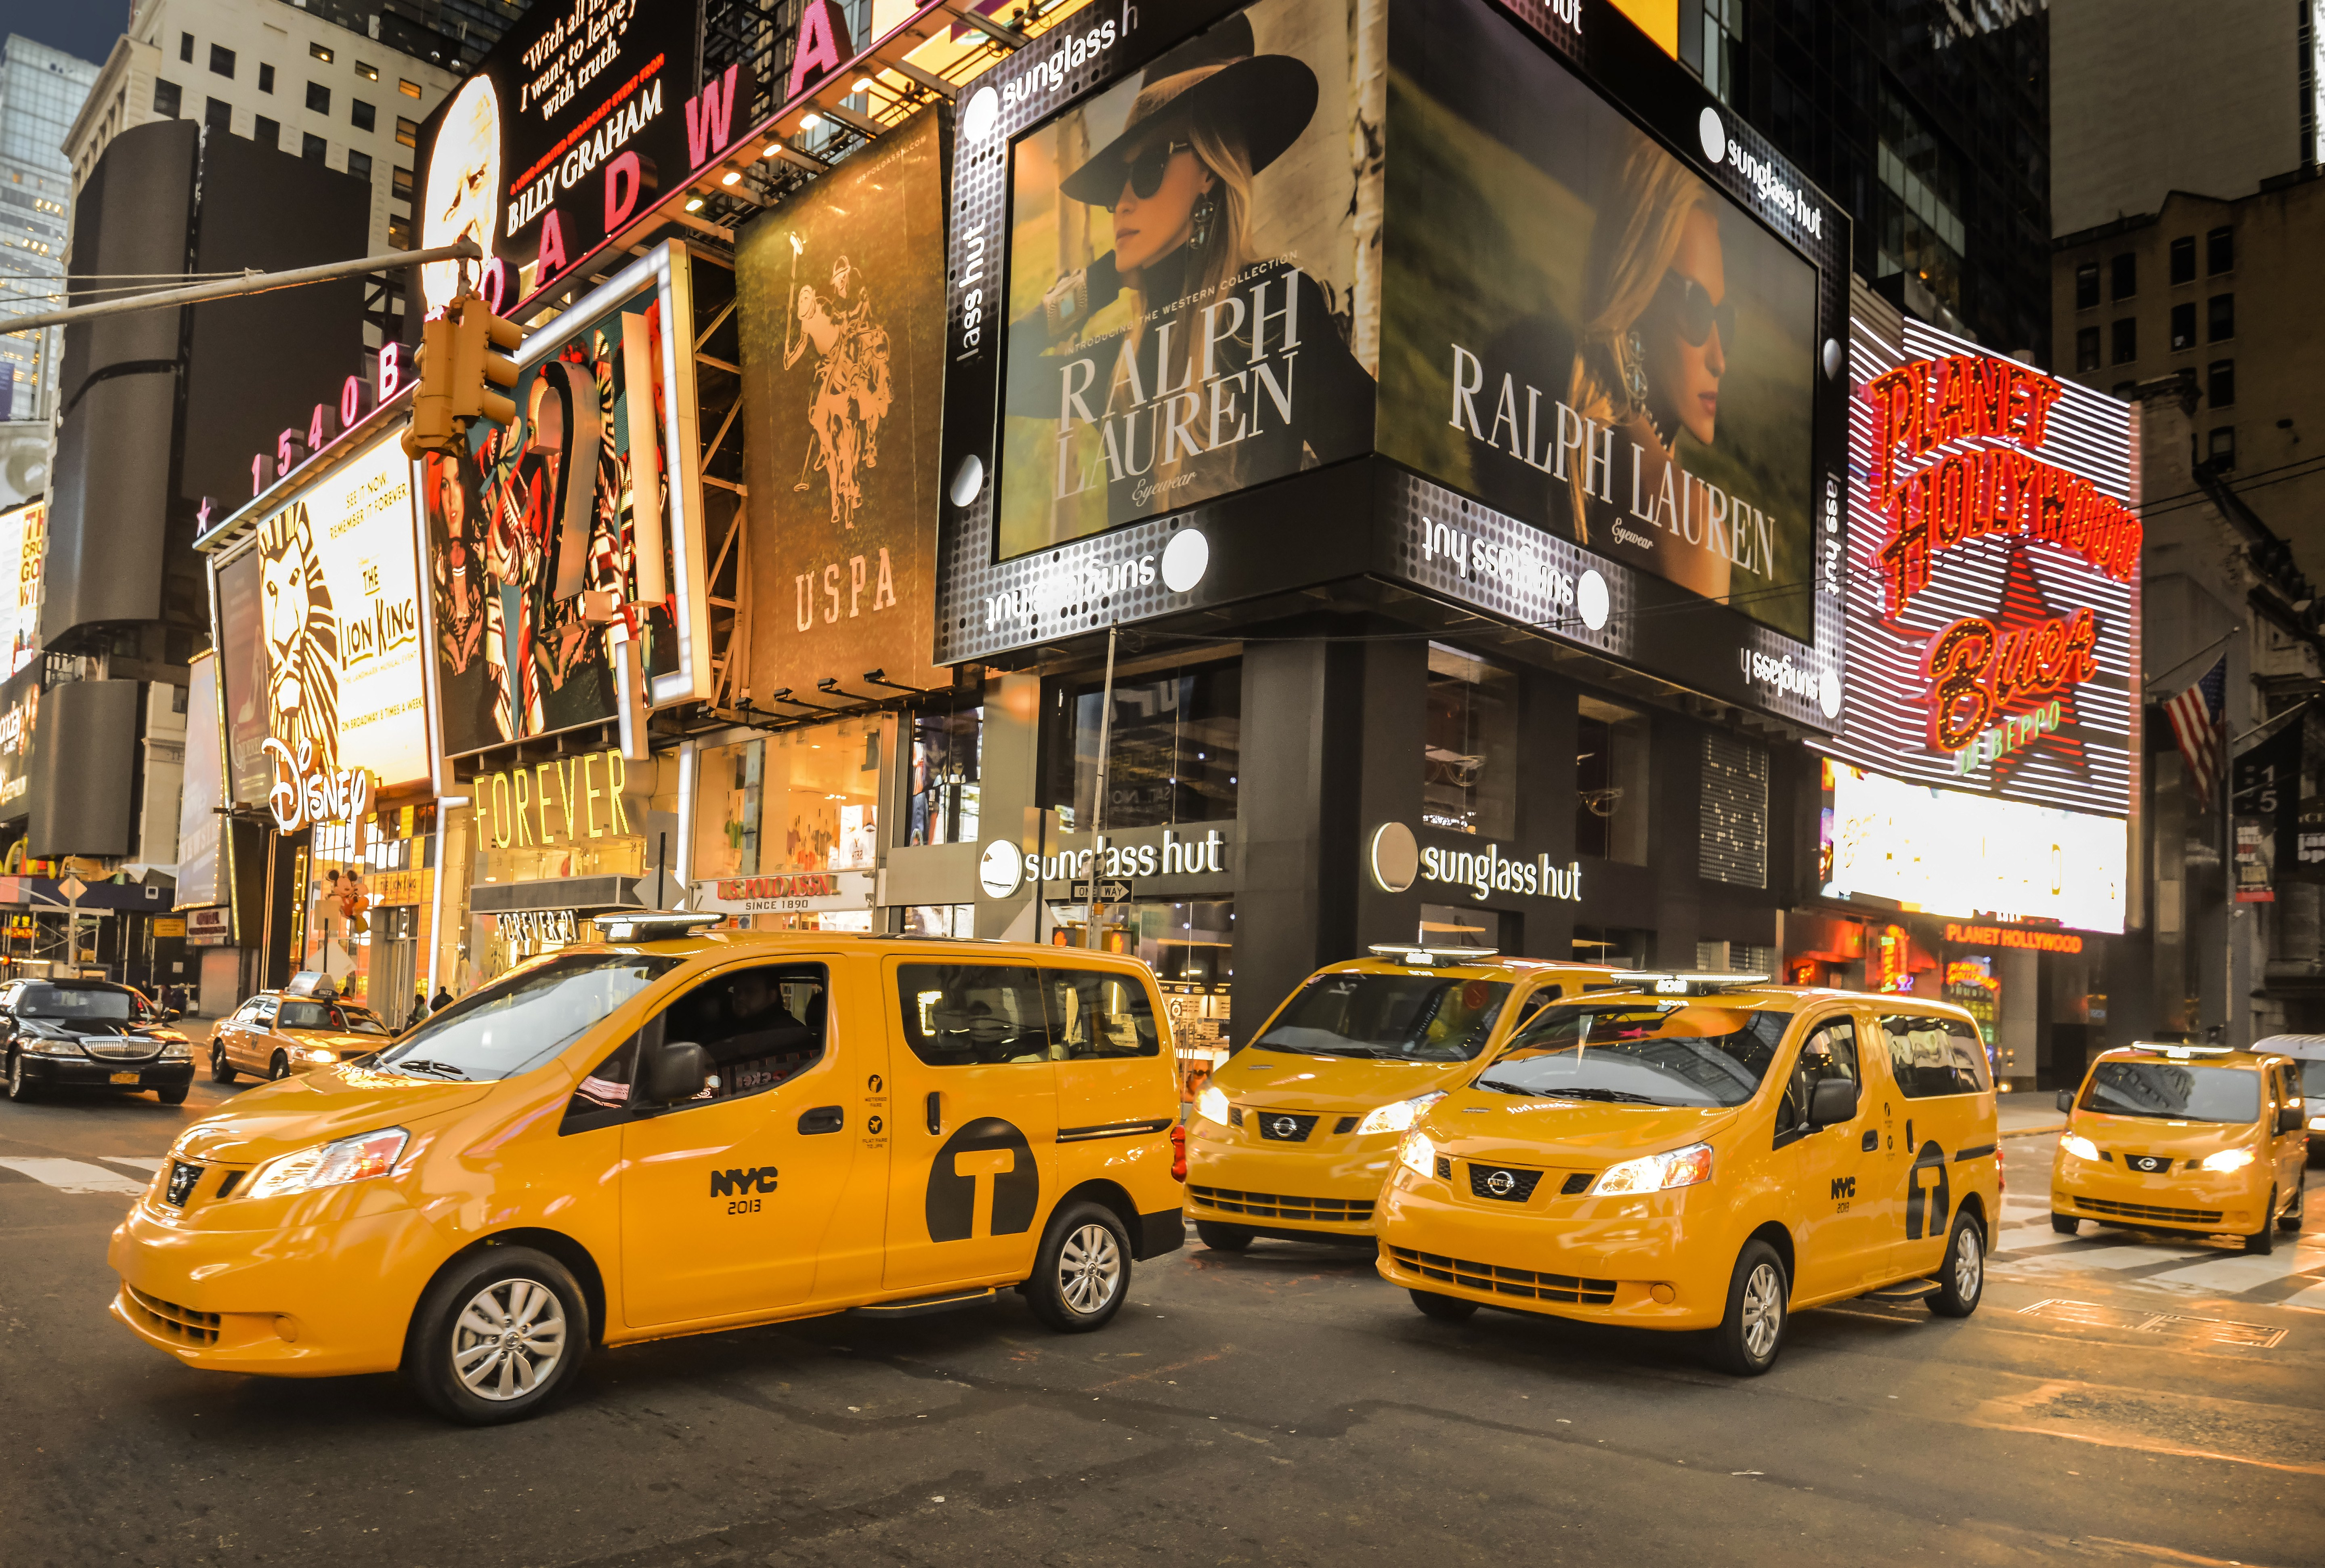 The Nissan Van Taxi That Will Rule NYC's Streets Is Actually Great ...